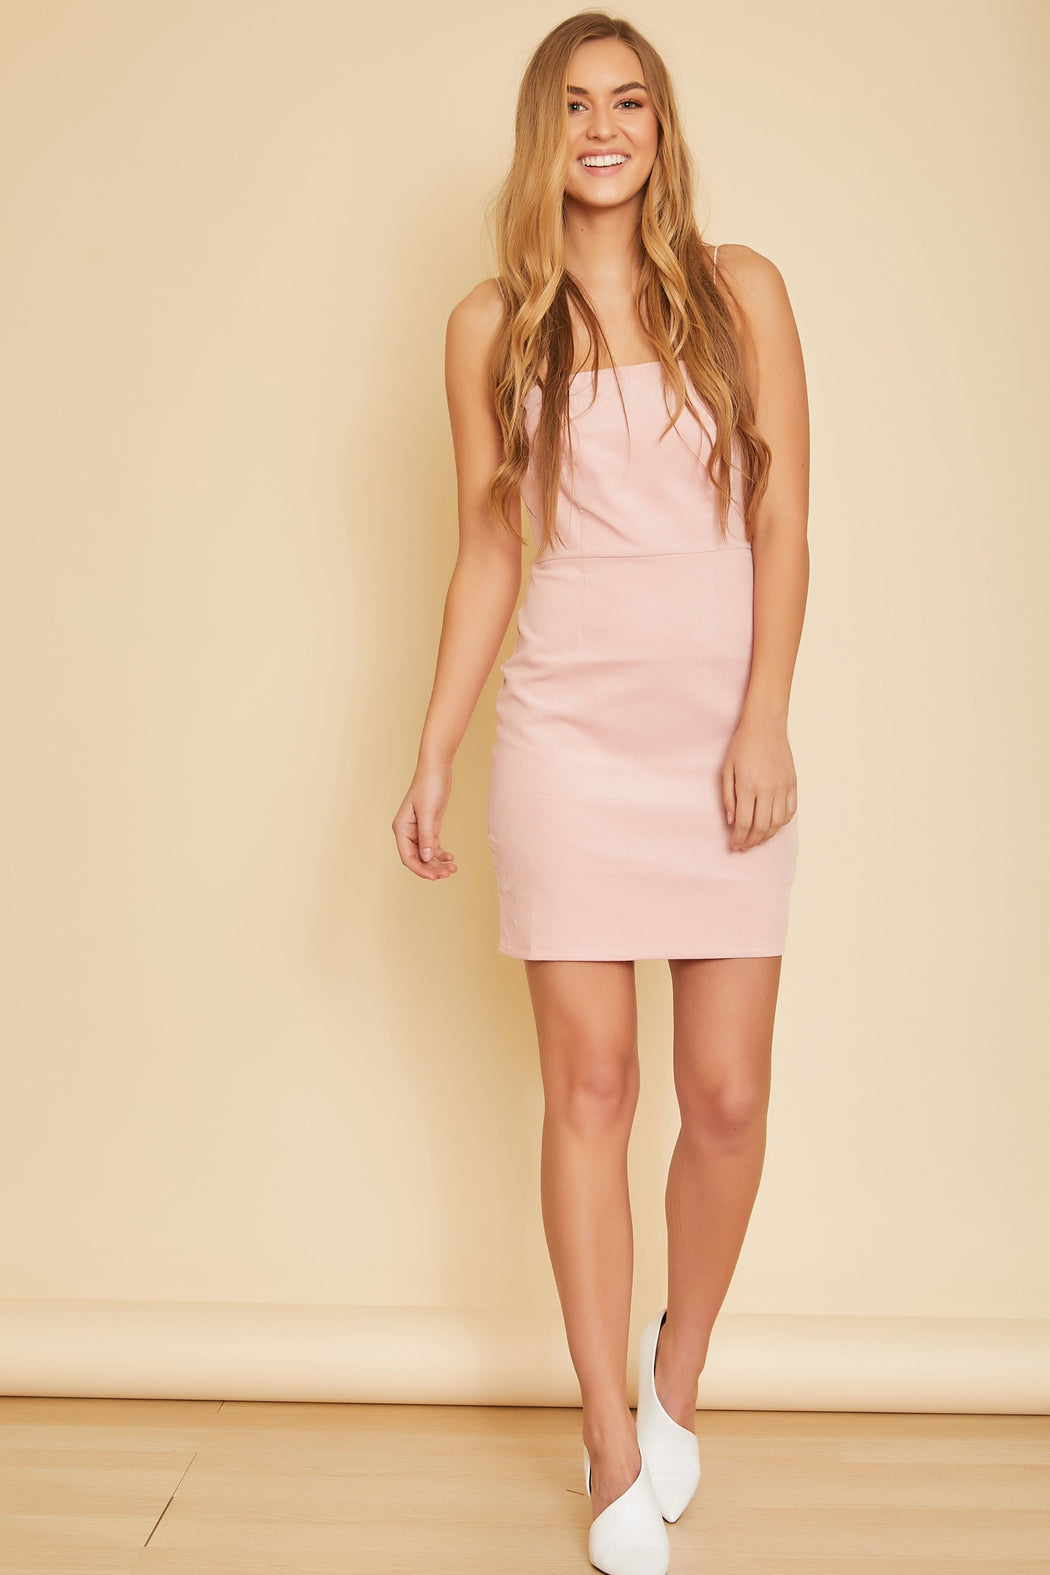 Marianne Corduroy Sleeveless Dress - wearNYLA